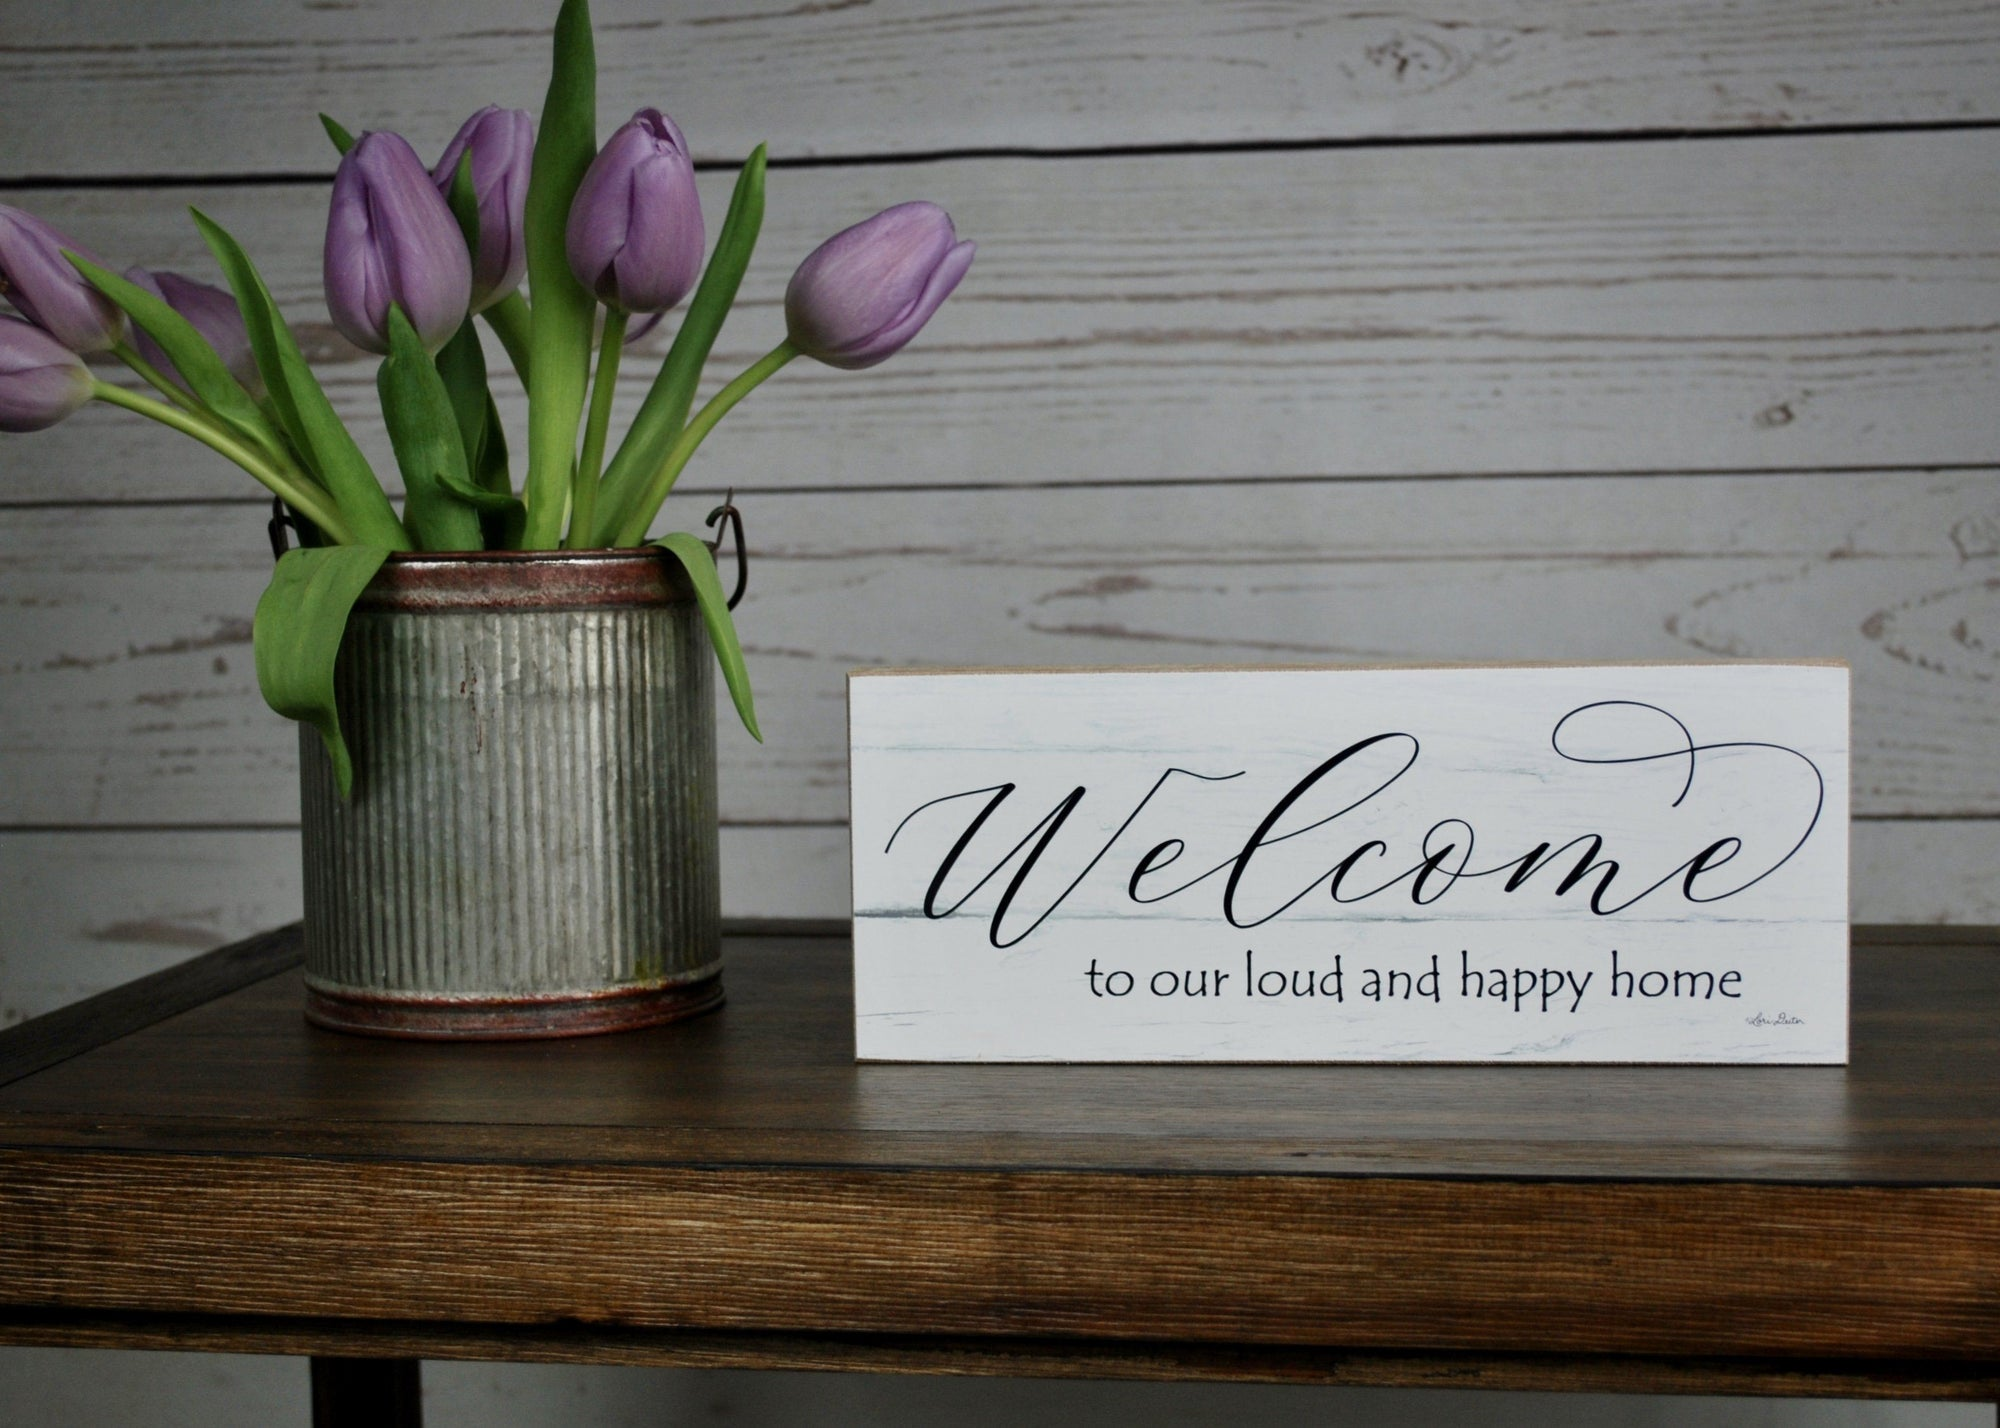 Welcome Sign, Mom Gift, Happy Home Sign, Welcome to Our Loud and Happy Home, Farmhouse Sign, Farmhouse Style, Gift for Mom, Gift from Children, Mom Gift from Daughter, Mom Gift from Son